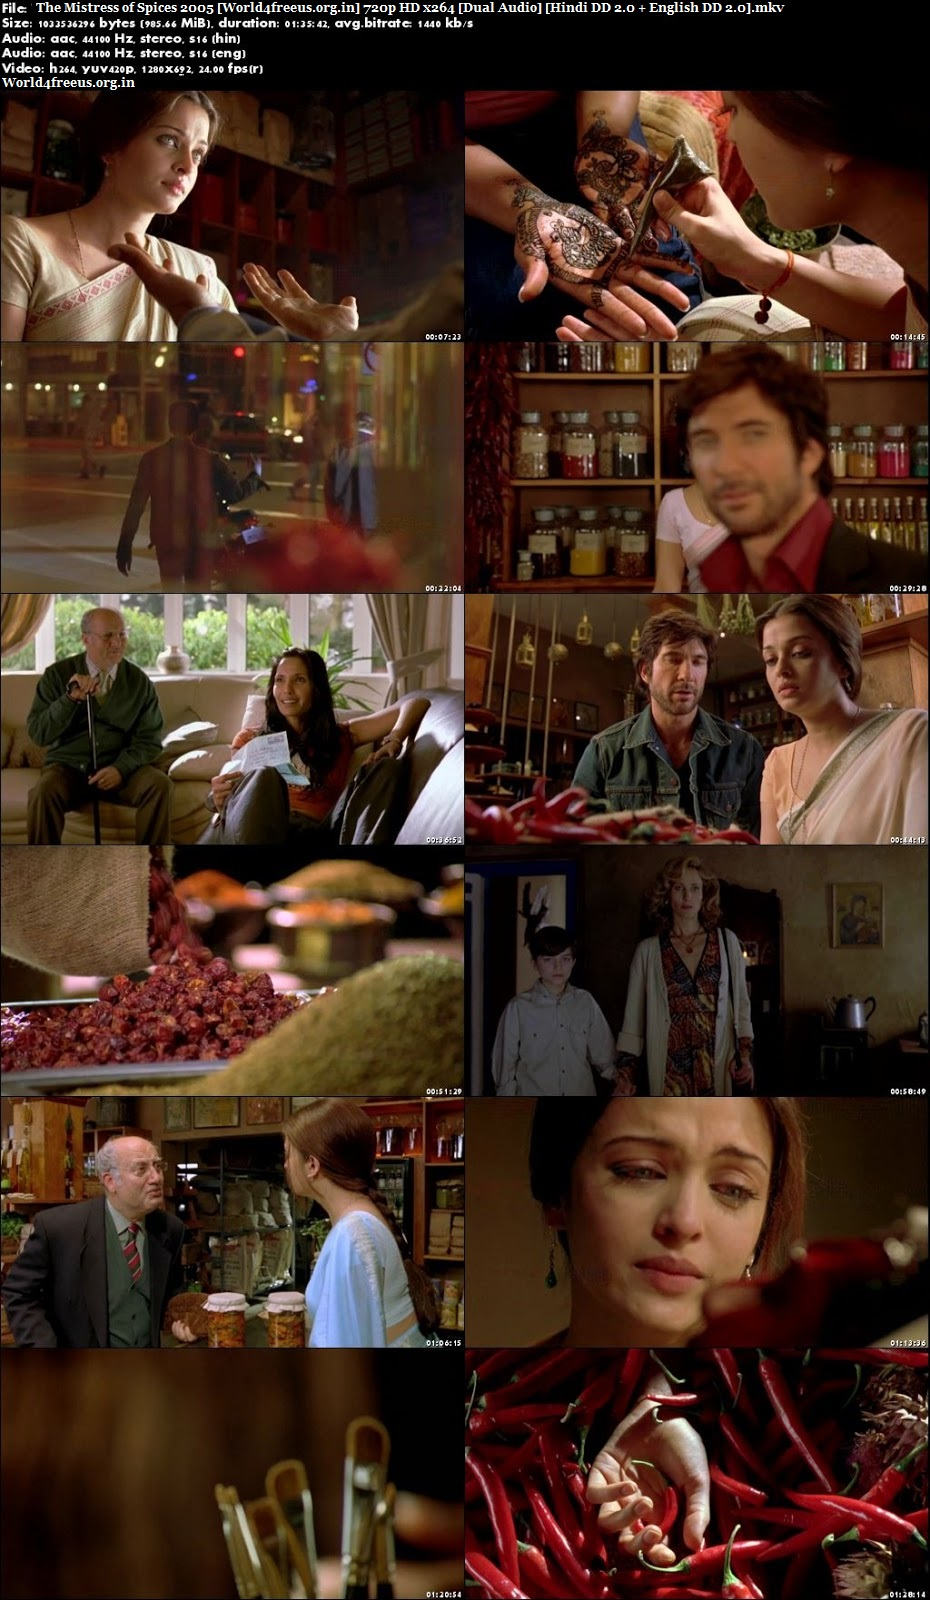 The Mistress of Spices 2005 Dual Audio Hindi English In HD 720p